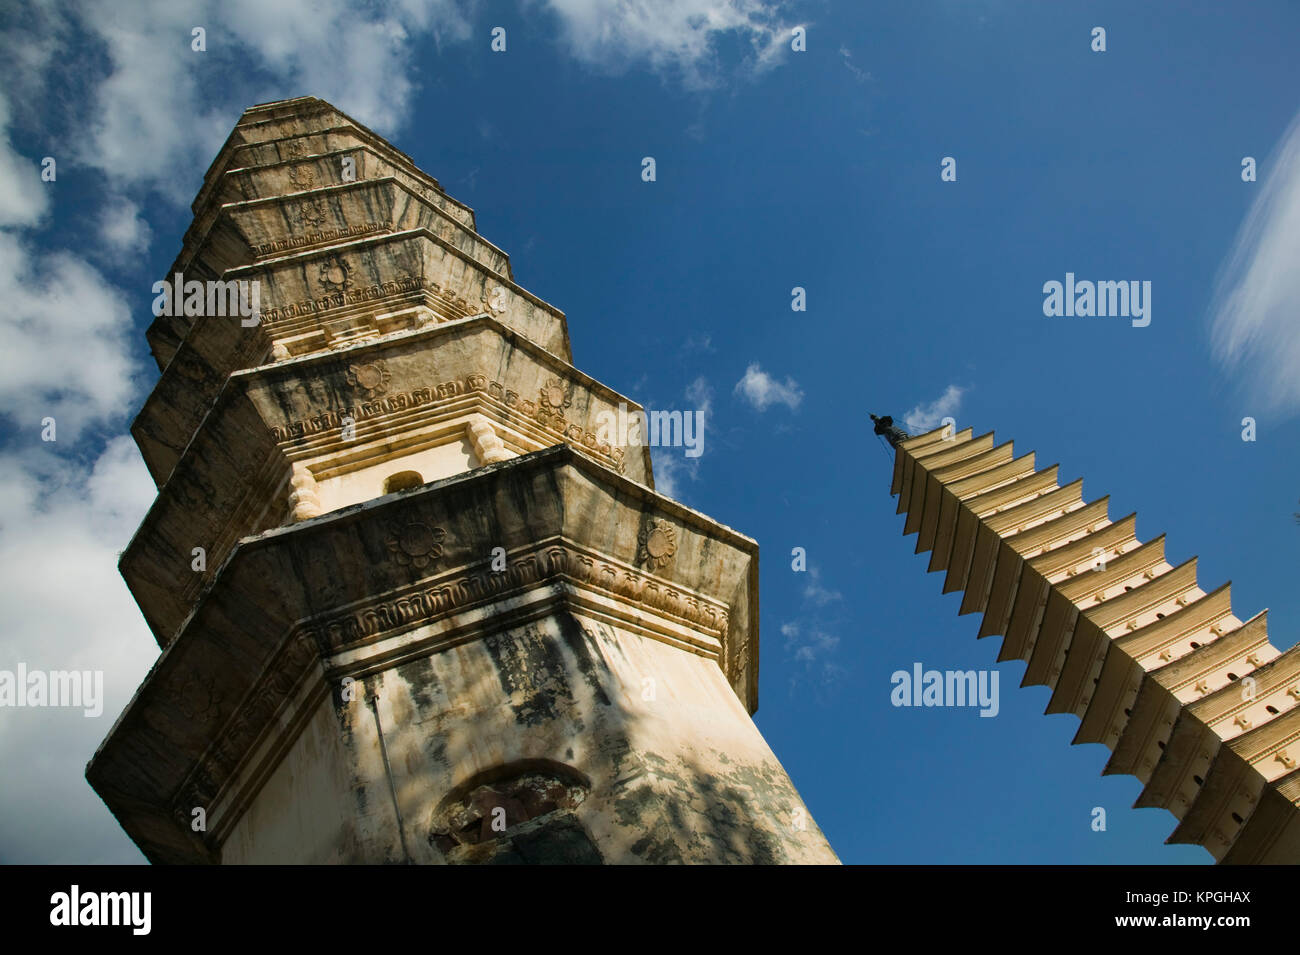 CHINA-Yunnan Province-Dali: Dali Old Town- Three Pagoda Park (built in the 9th century) -tallest is the Qianxun - Stock Image